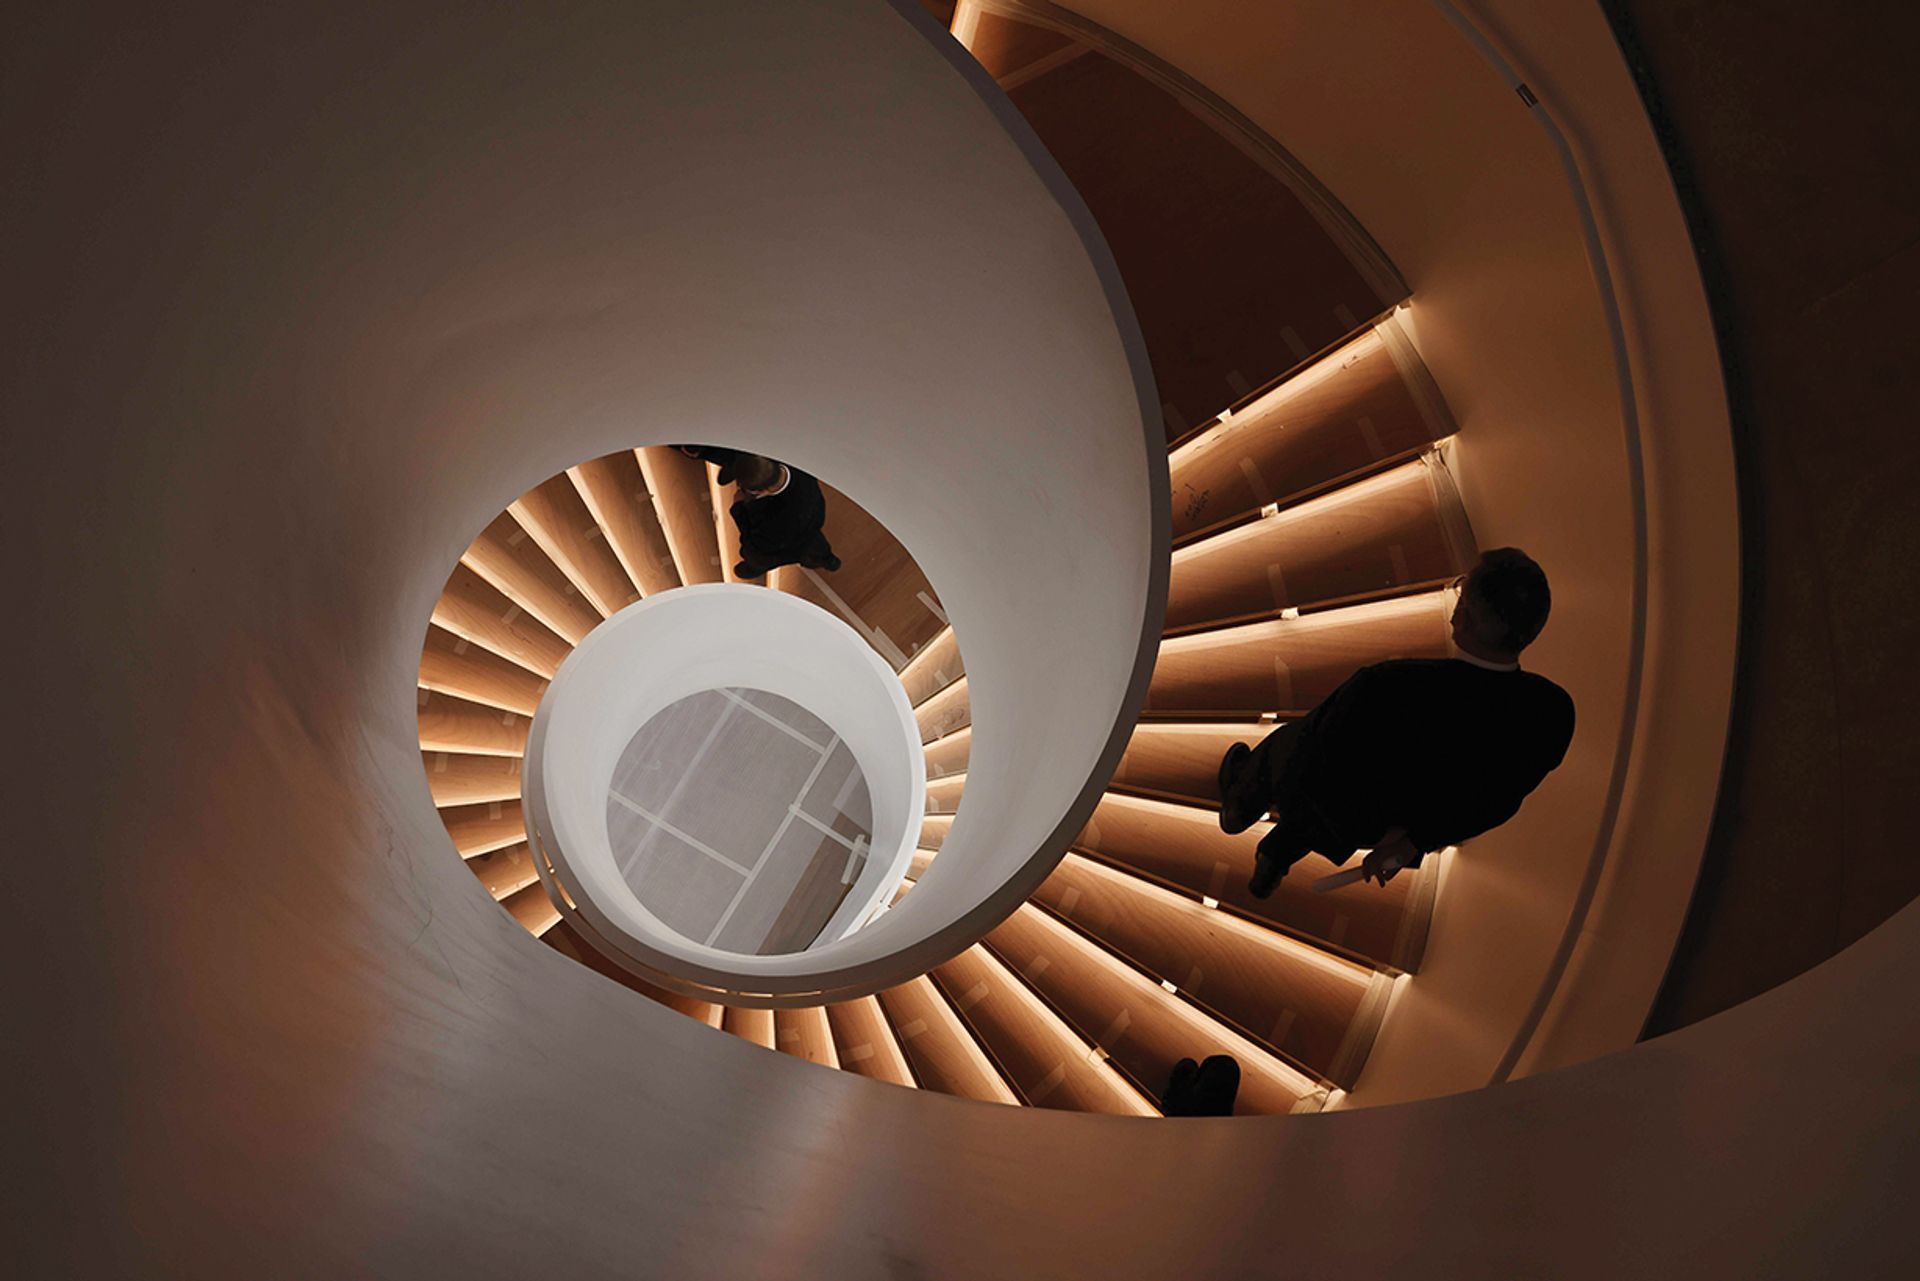 Going round in circles? Chinese museum staff are frustrated by the appointment of foreign bosses with minimal experience in the region ZUMA Press Inc/Alamy